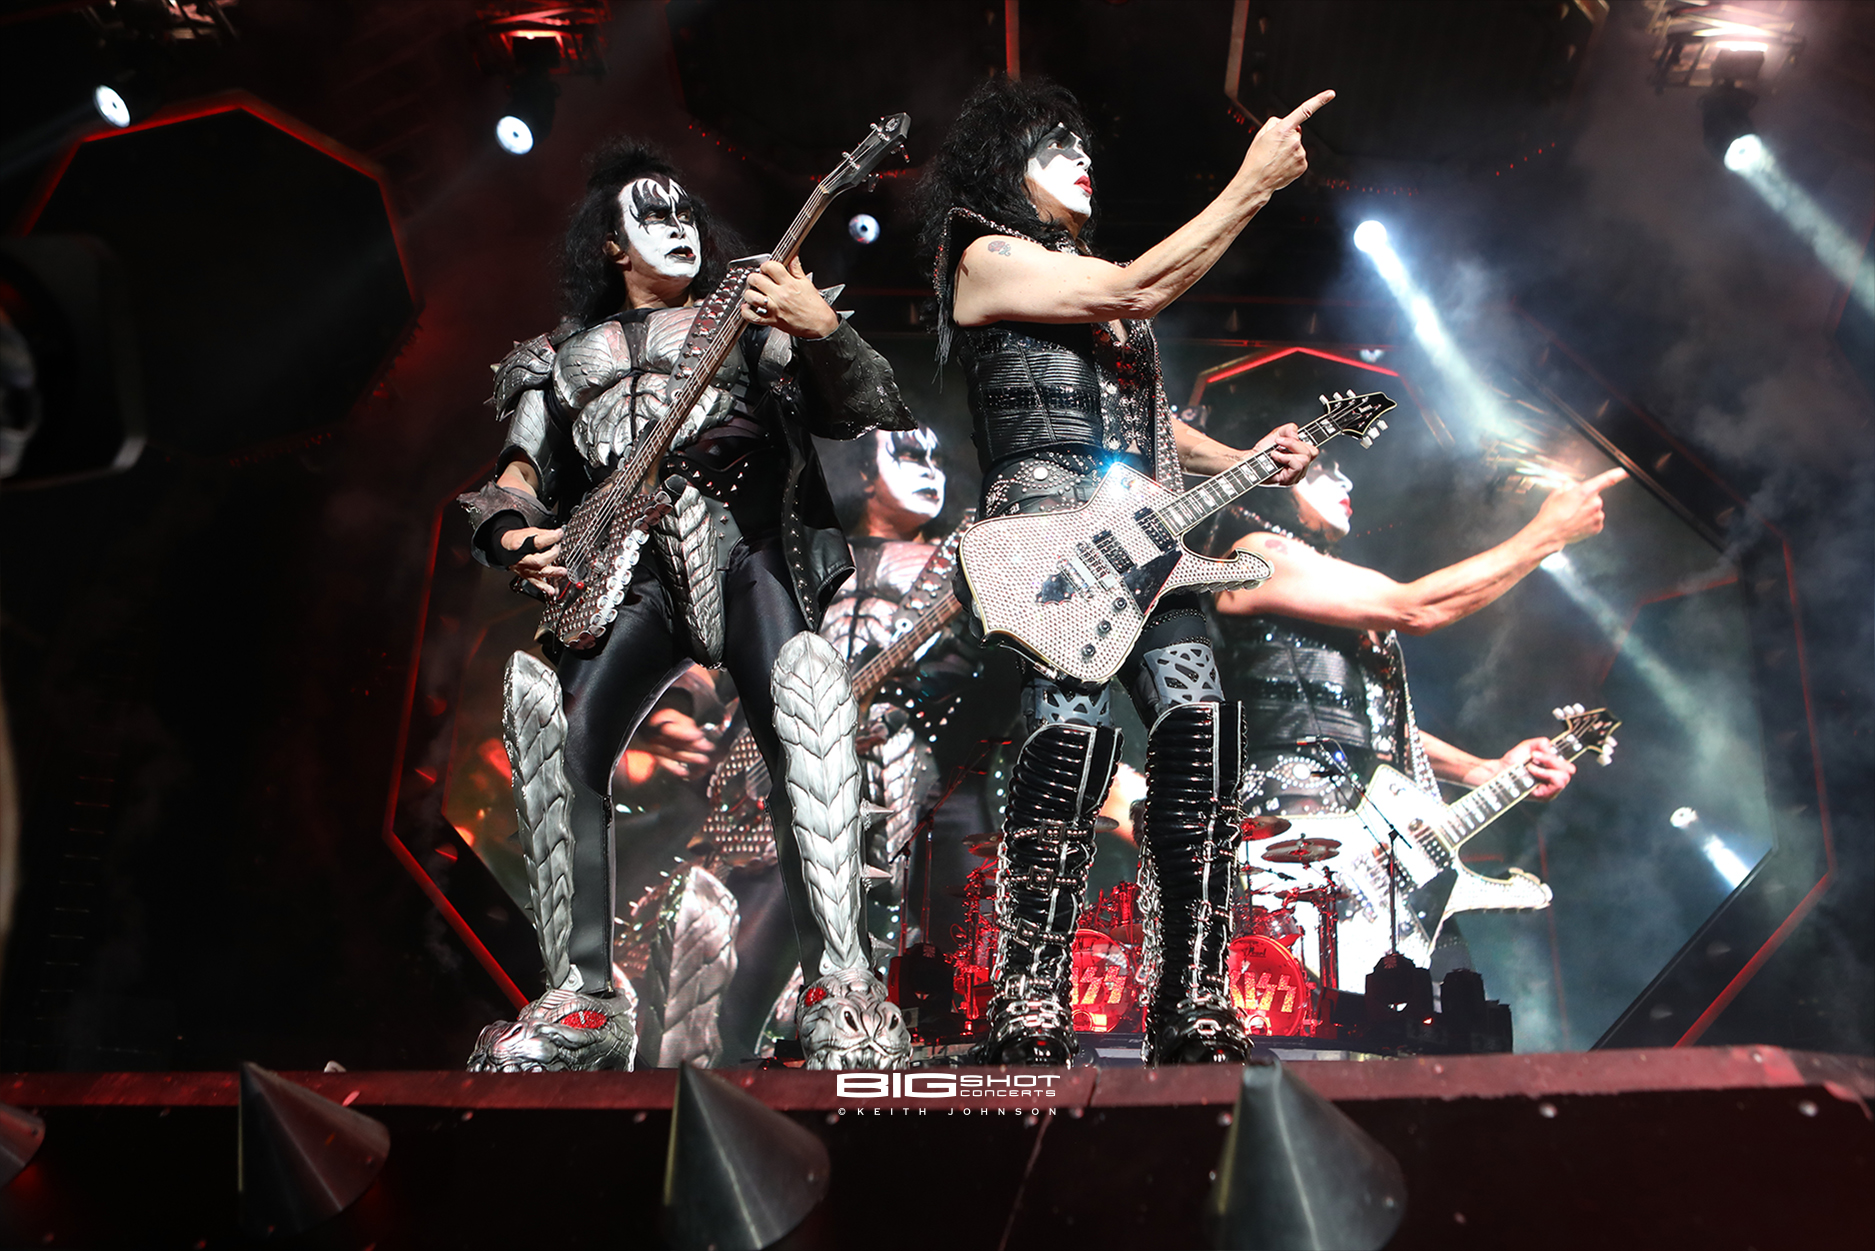 End of the Road World Tour - KISS